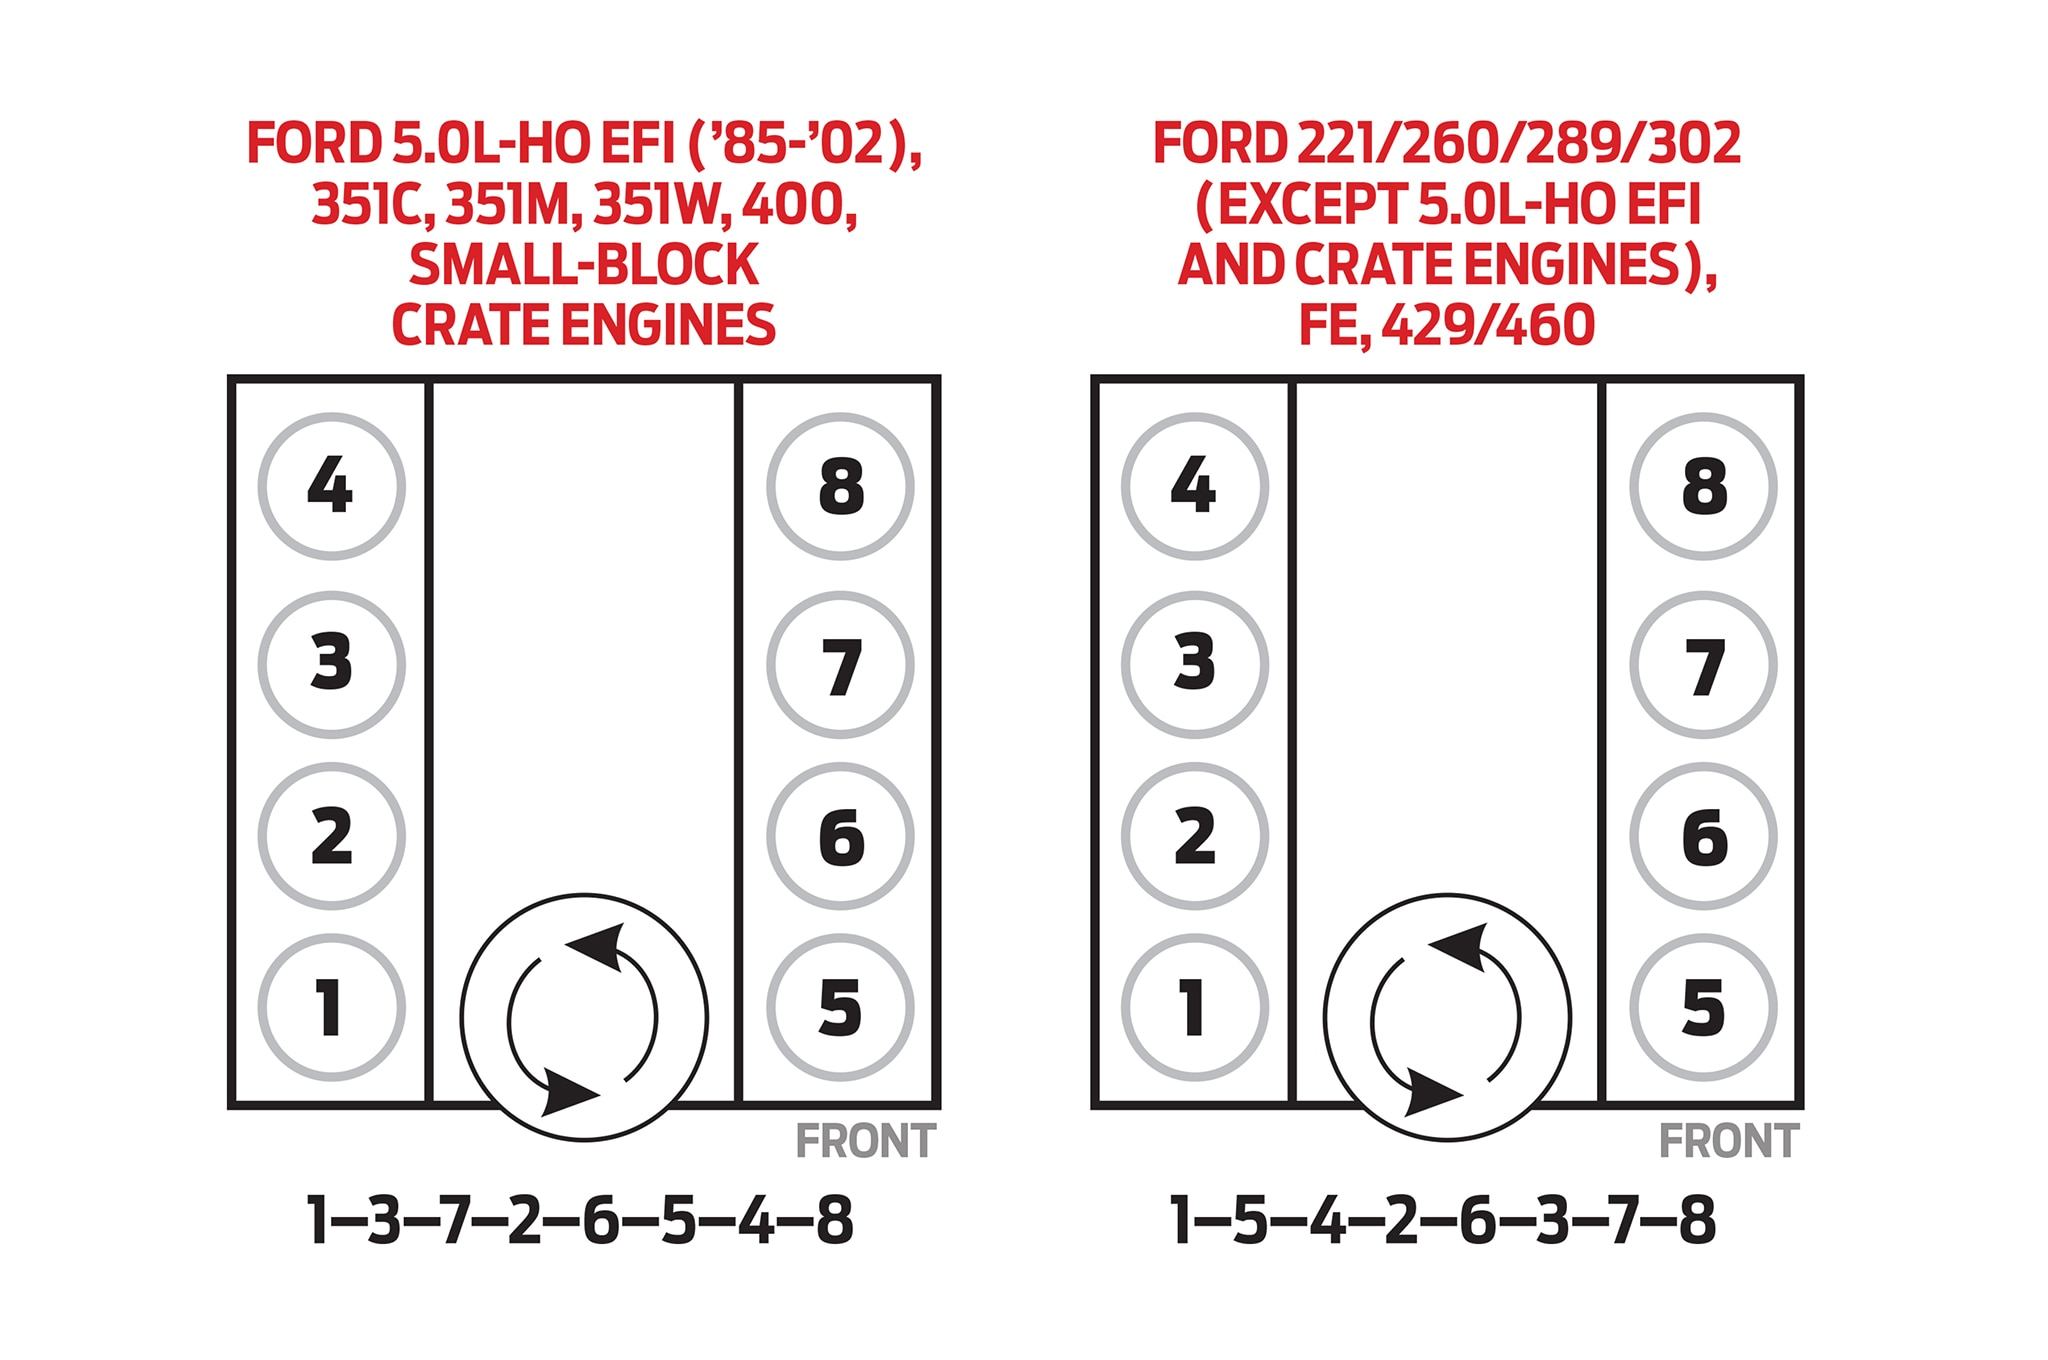 ford 302 firing order diagram three phase motor contactor wiring hot rod to the rescue this late model 5 0l sfi system